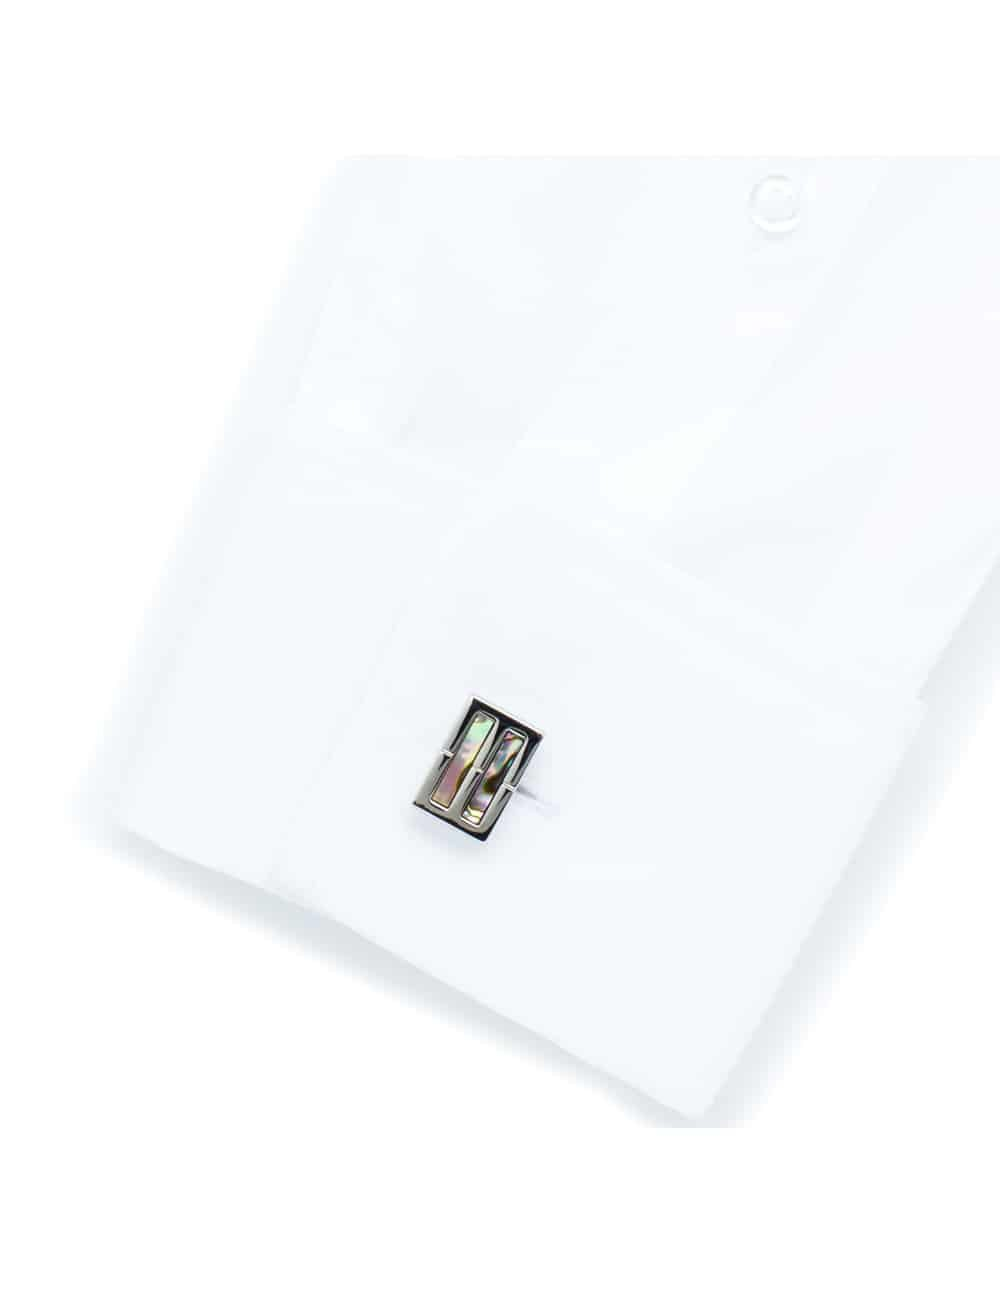 Chrome rhodium double band cufflink with rectangular oyster shell accents C131FP-032